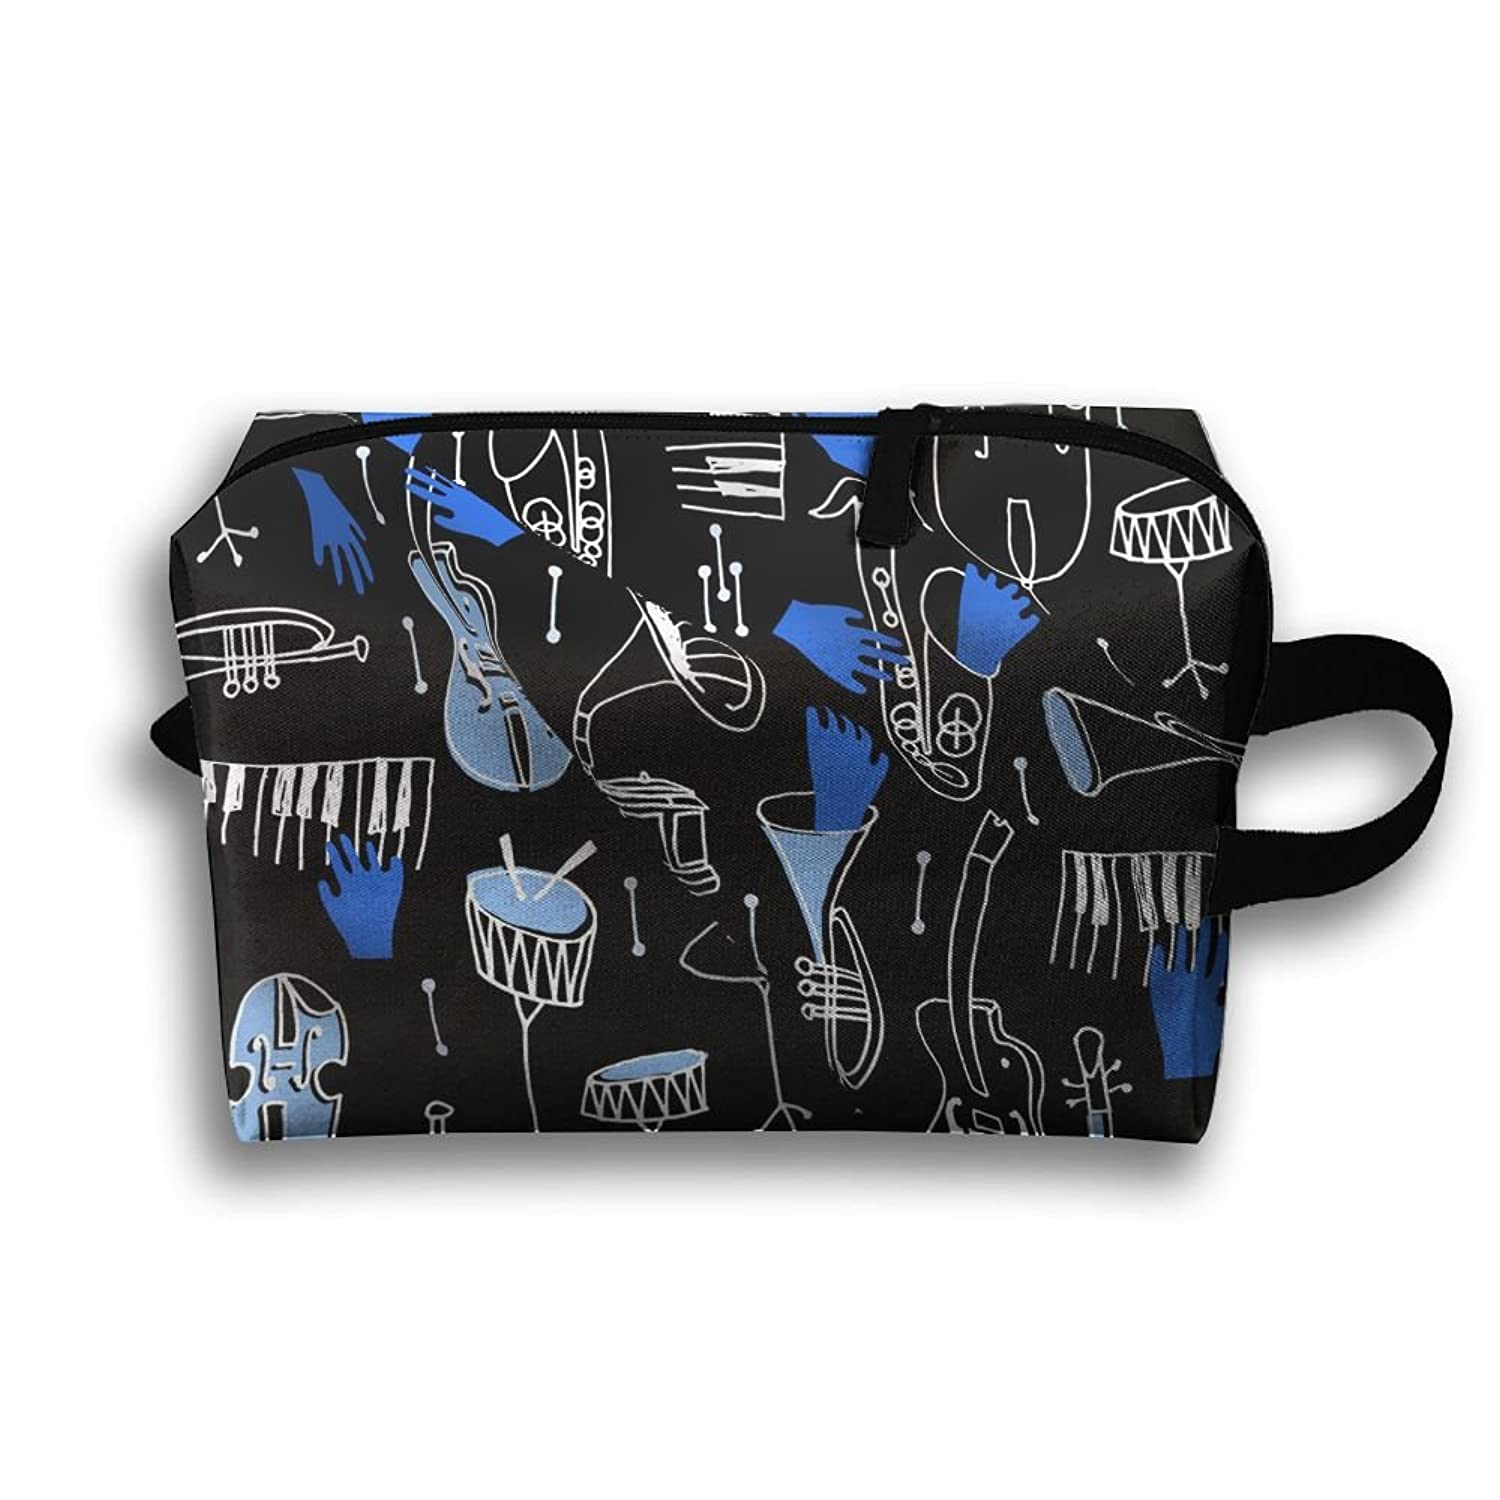 Cool Musical Instruments Stylistic Features Travel Bag Cosmetic Bags Brush Pouch Portable Makeup Bag Zipper Wallet Hangbag Pen Organizer Carry Case Wristlet Holder